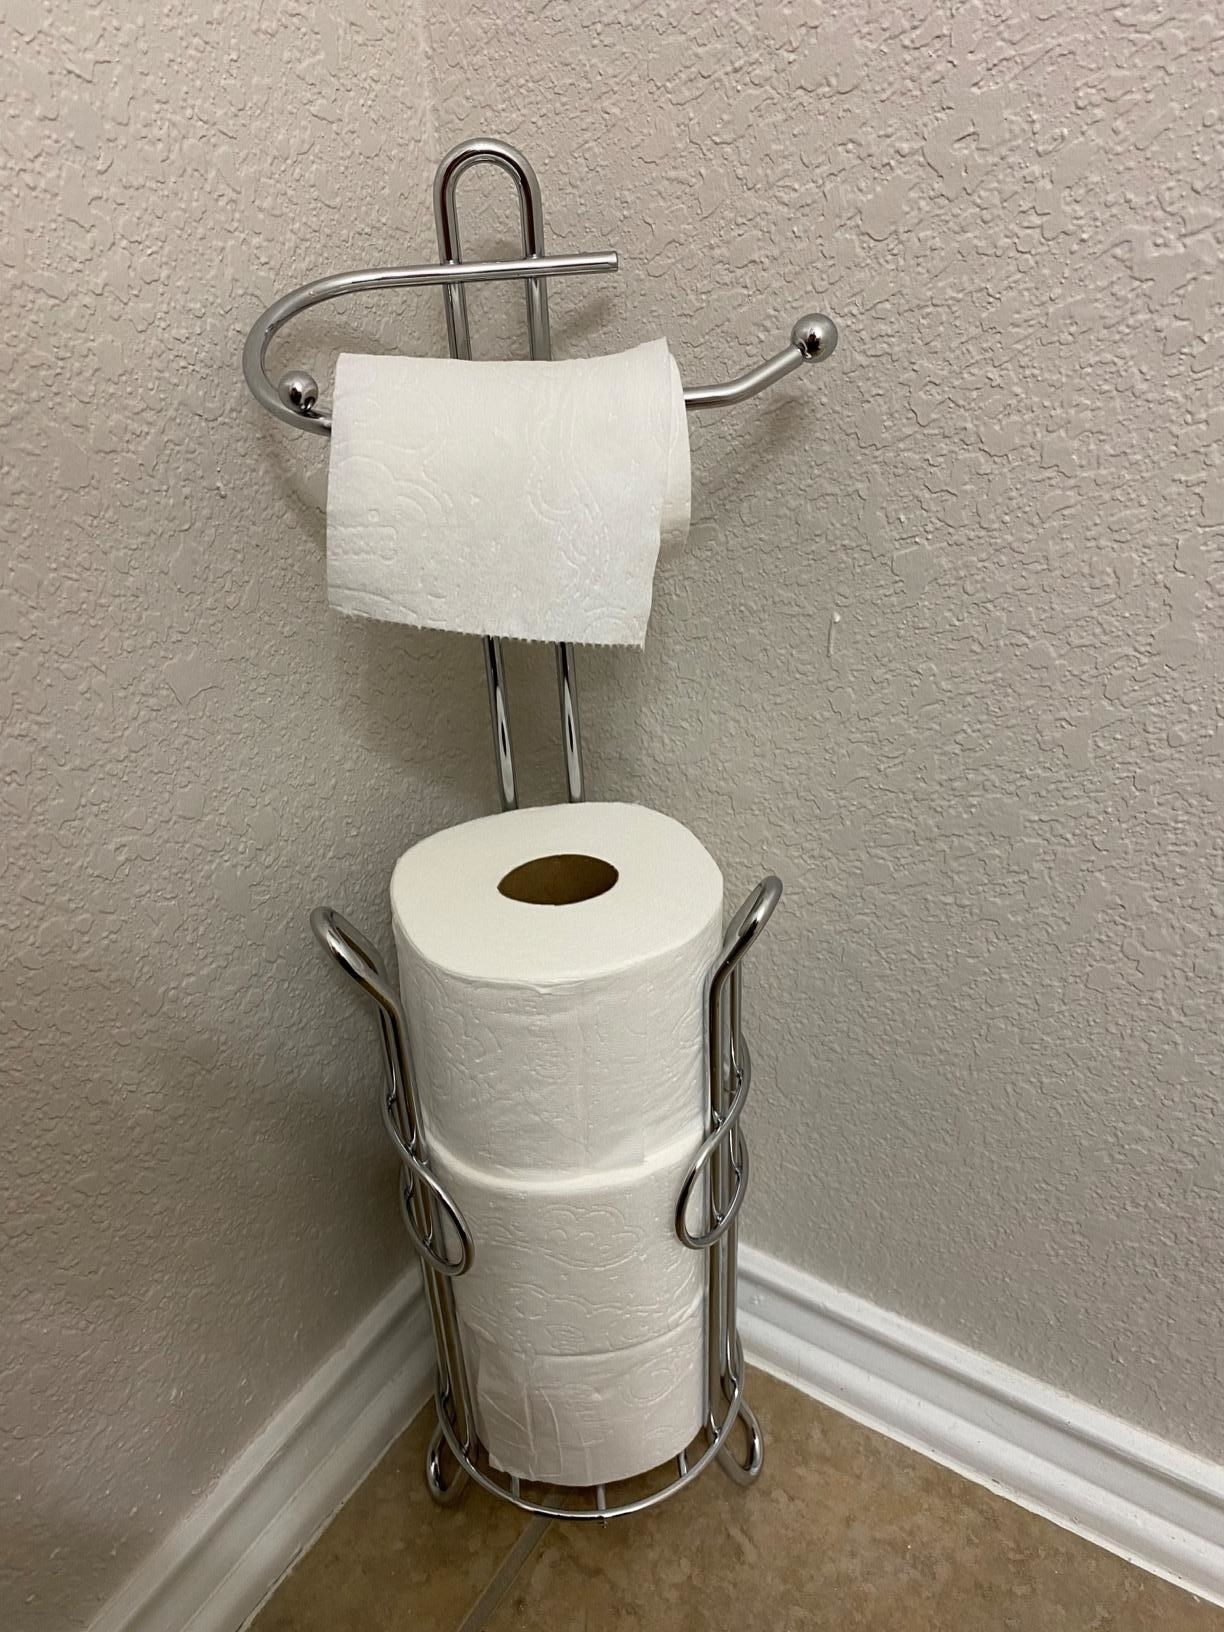 reviewer image of toilet paper stacked in the chrome SunnyPoint Bathroom Toilet paper holder